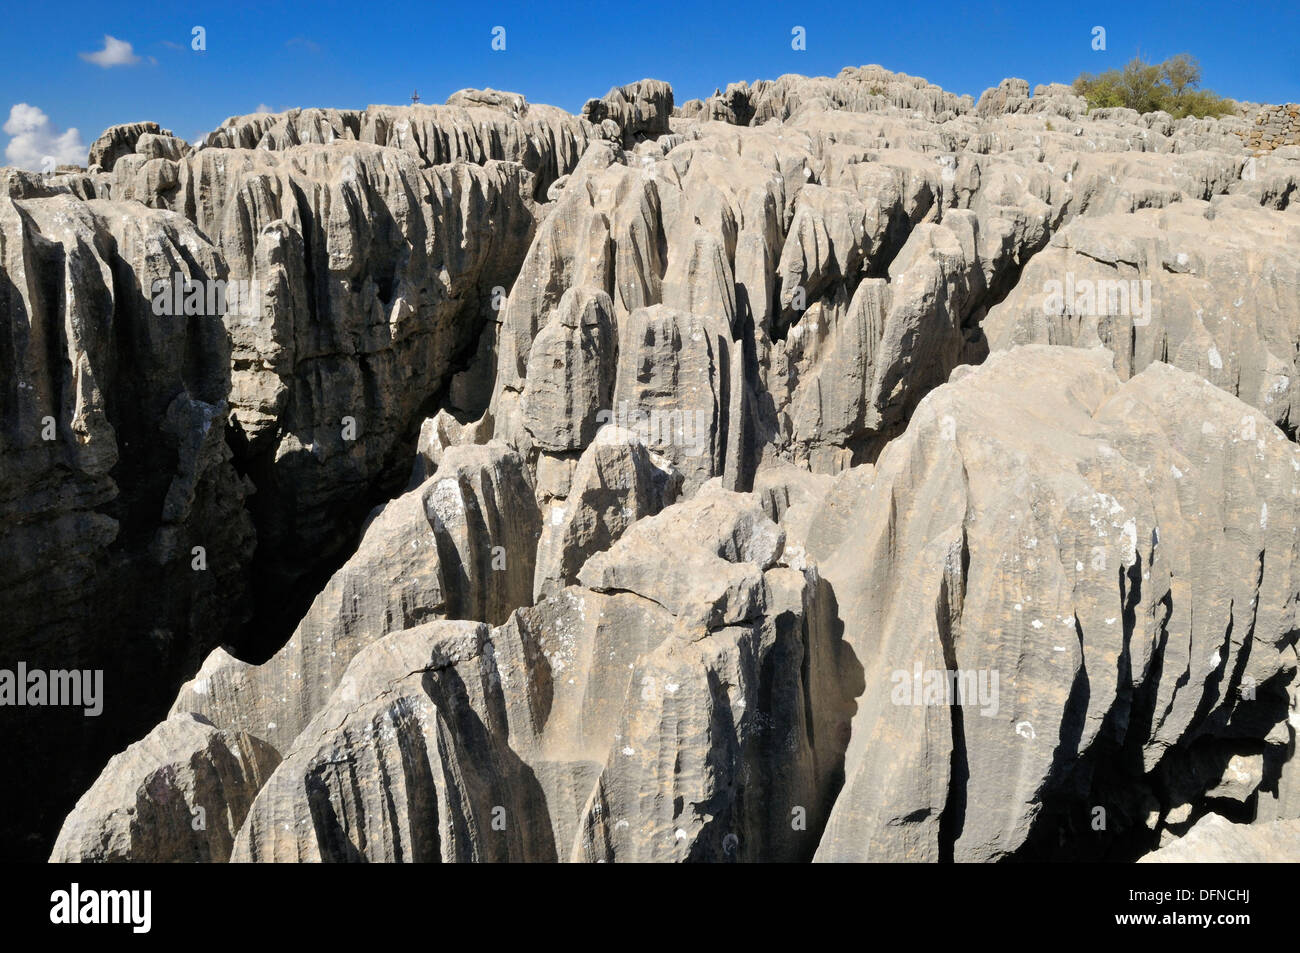 geology, eroded limestone, karst formation at Qalaat Faqra, Lebanon, Middle East, West Asia - Stock Image